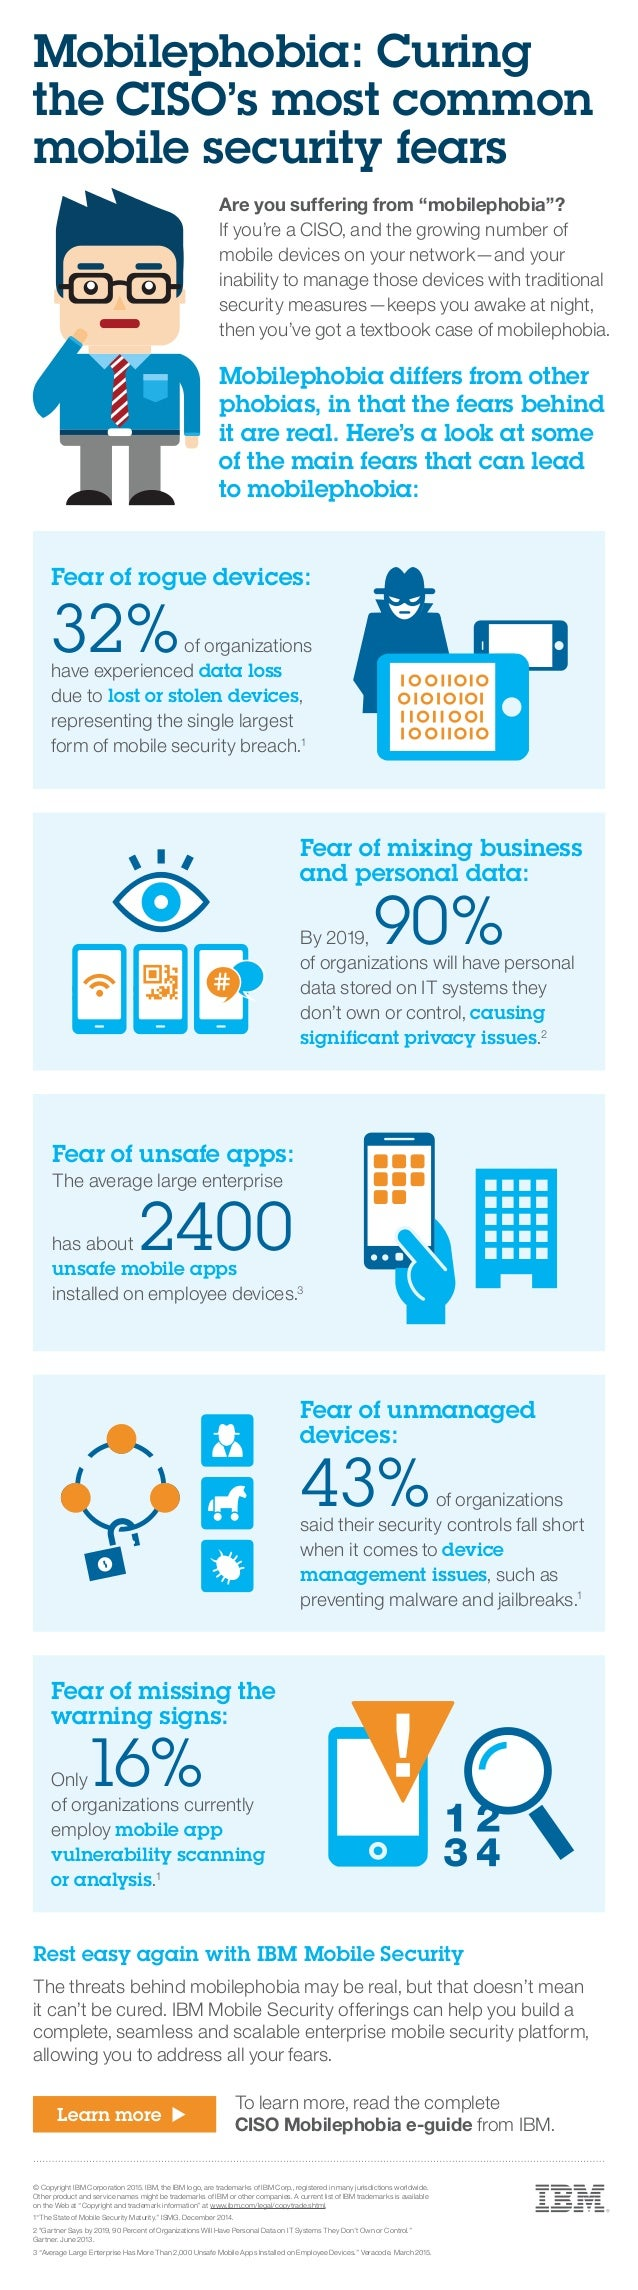 Rest easy again with IBM Mobile Security The threats behind mobilephobia may be real, but that doesn't mean it can't be cu...